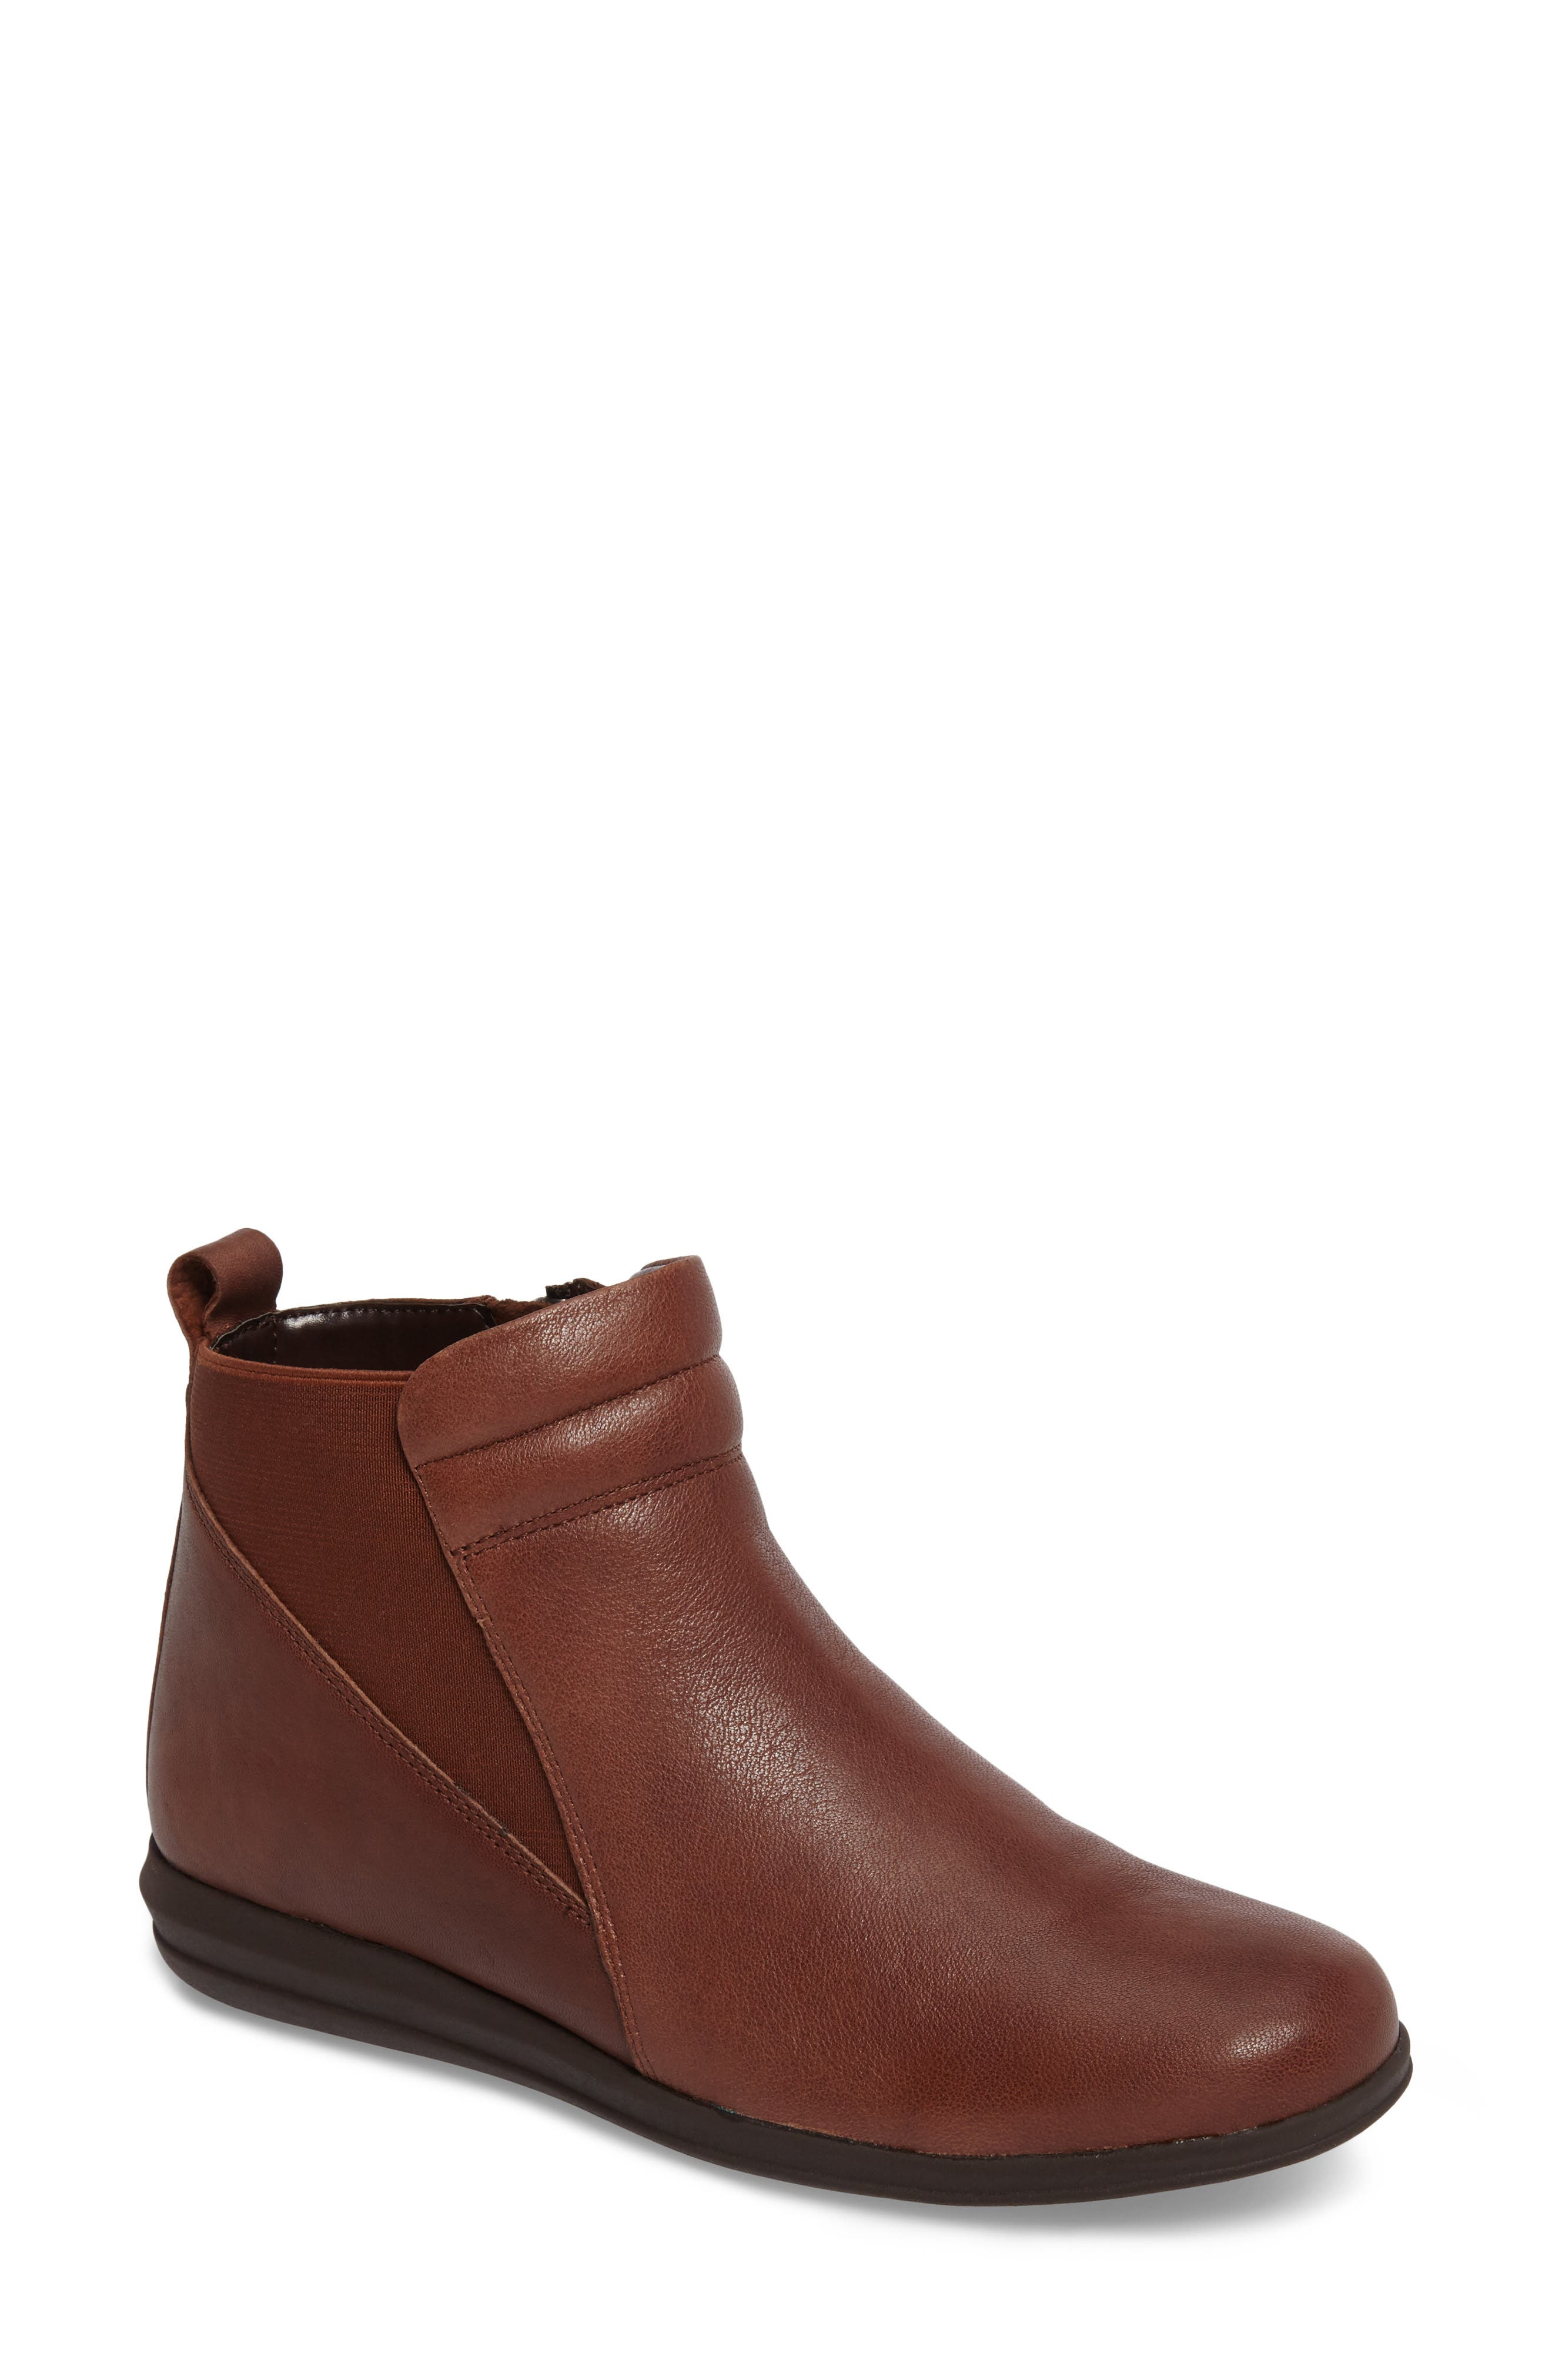 Cactus Bootie,                         Main,                         color, Brown Leather